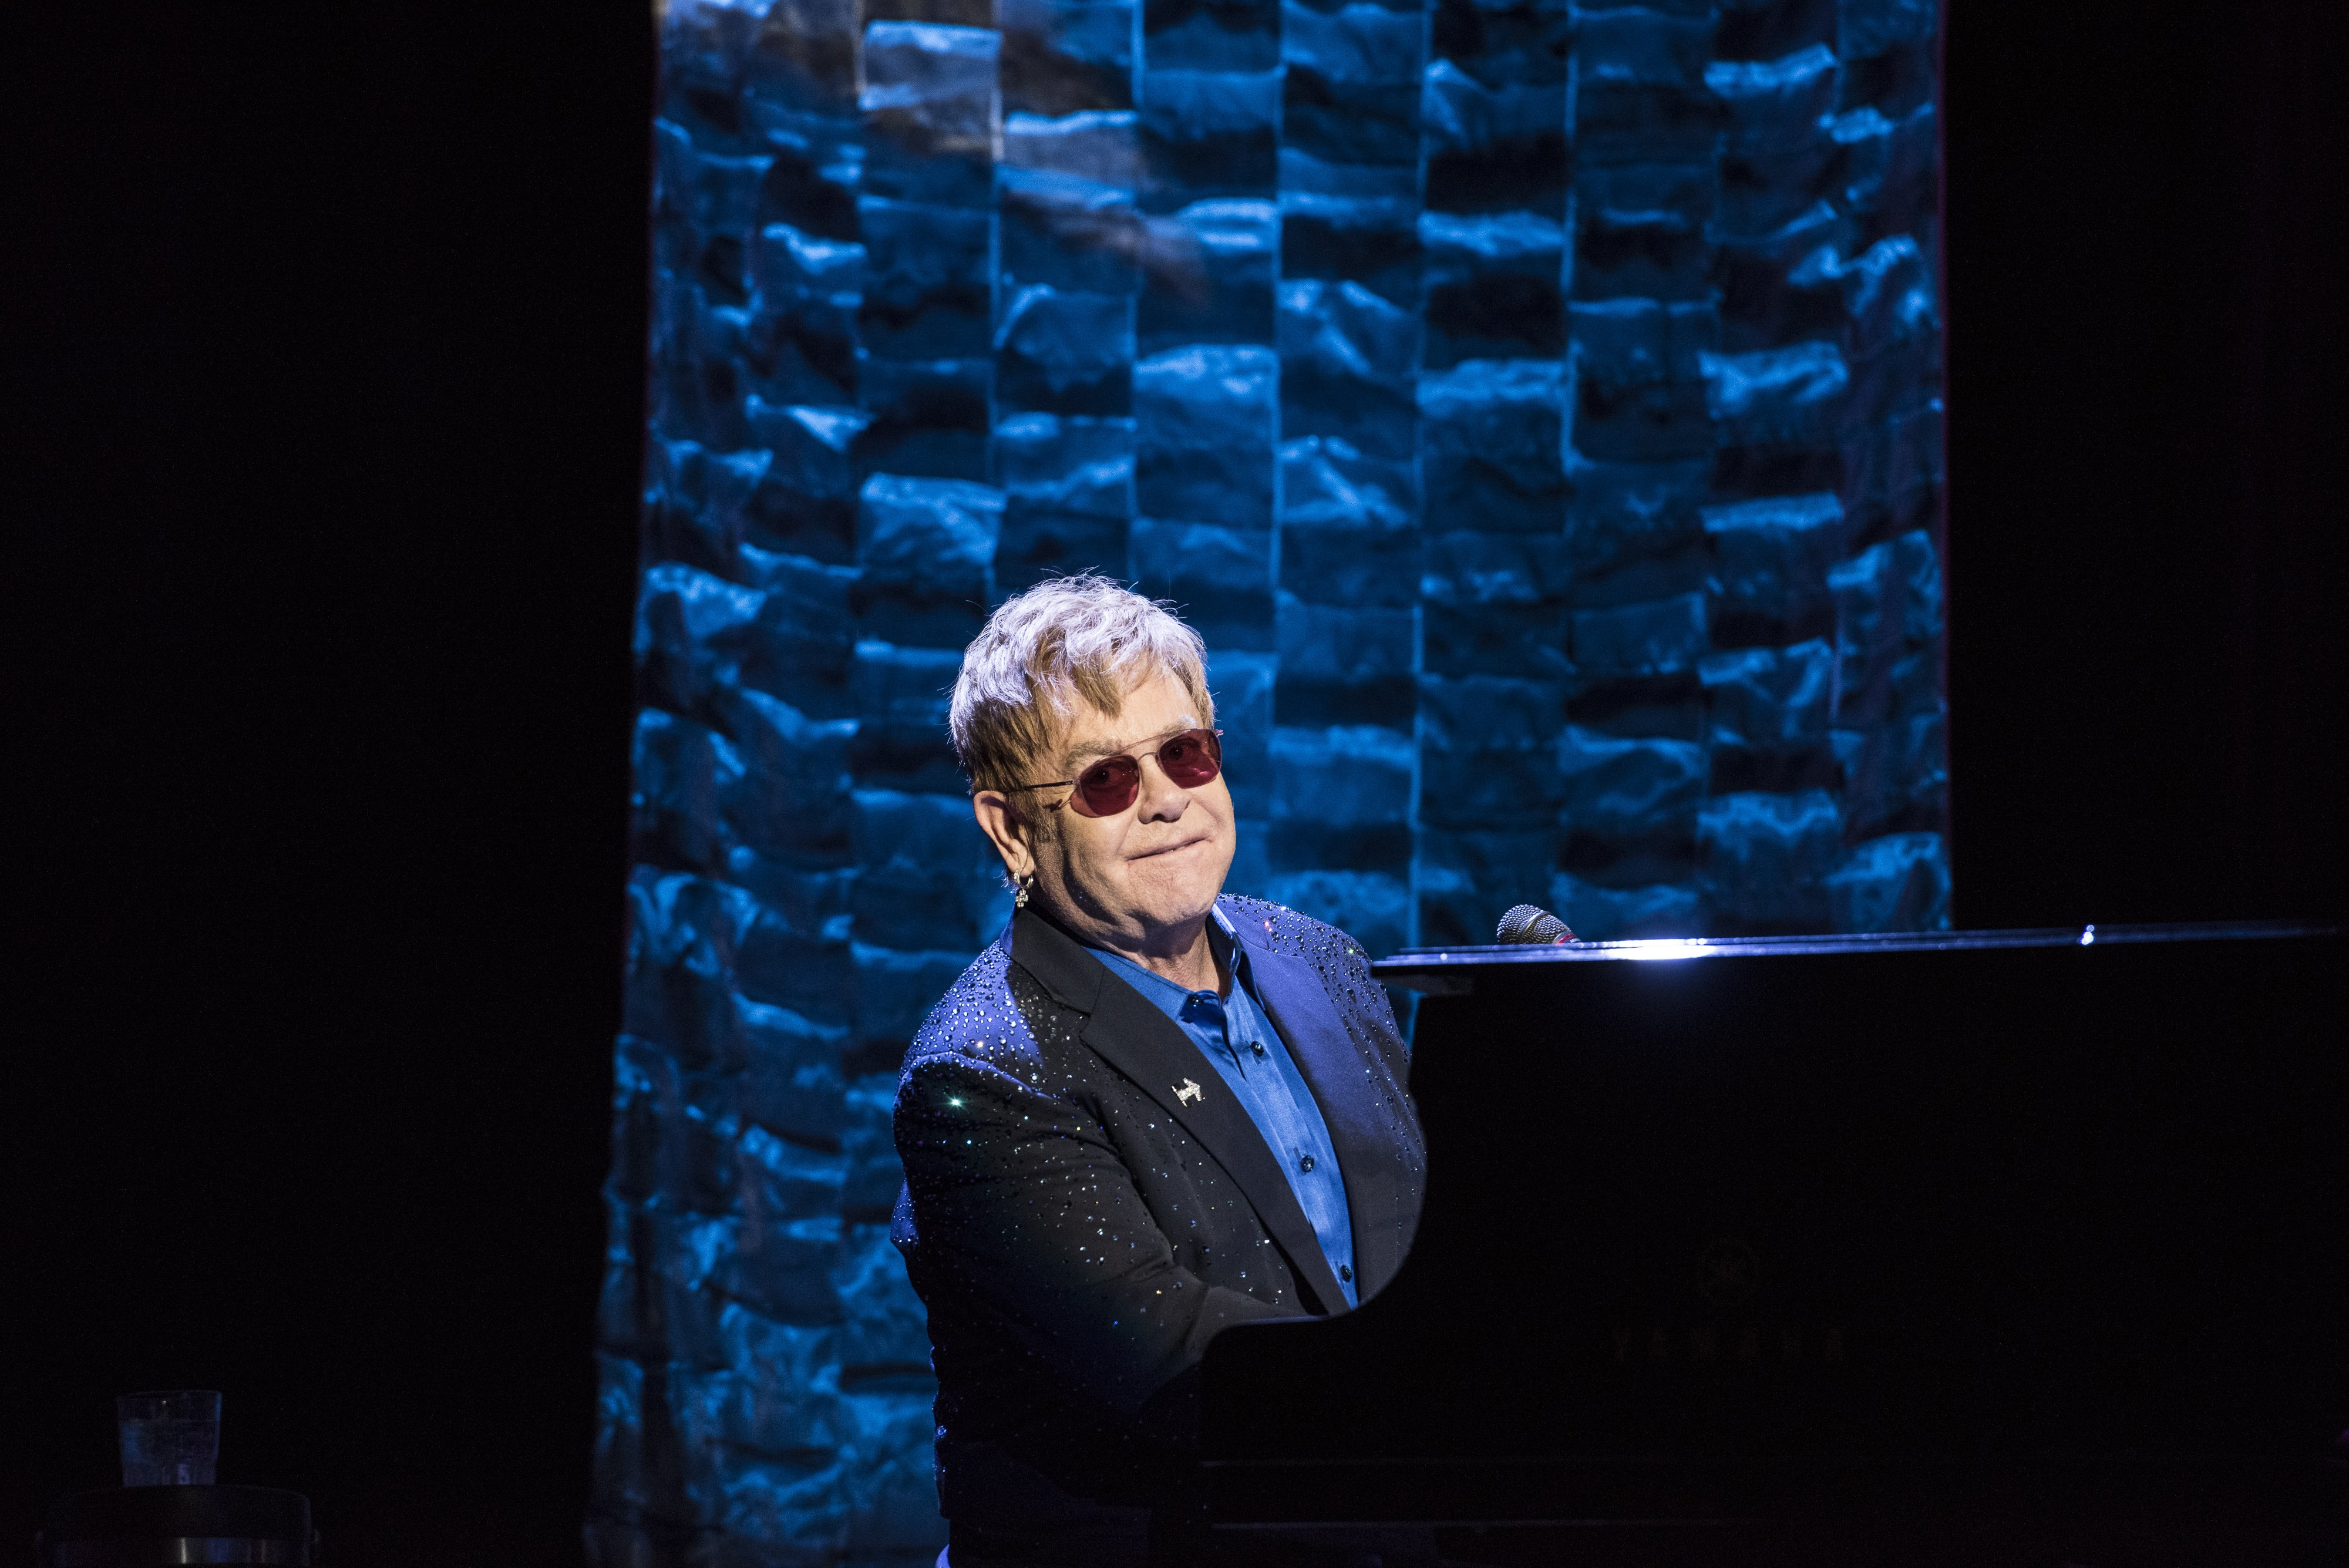 Elton John performs during a fundraiser for Democratic presidential candidate Hillary Clinton at Radio City Music Hall on March 2, 2016 in New York City